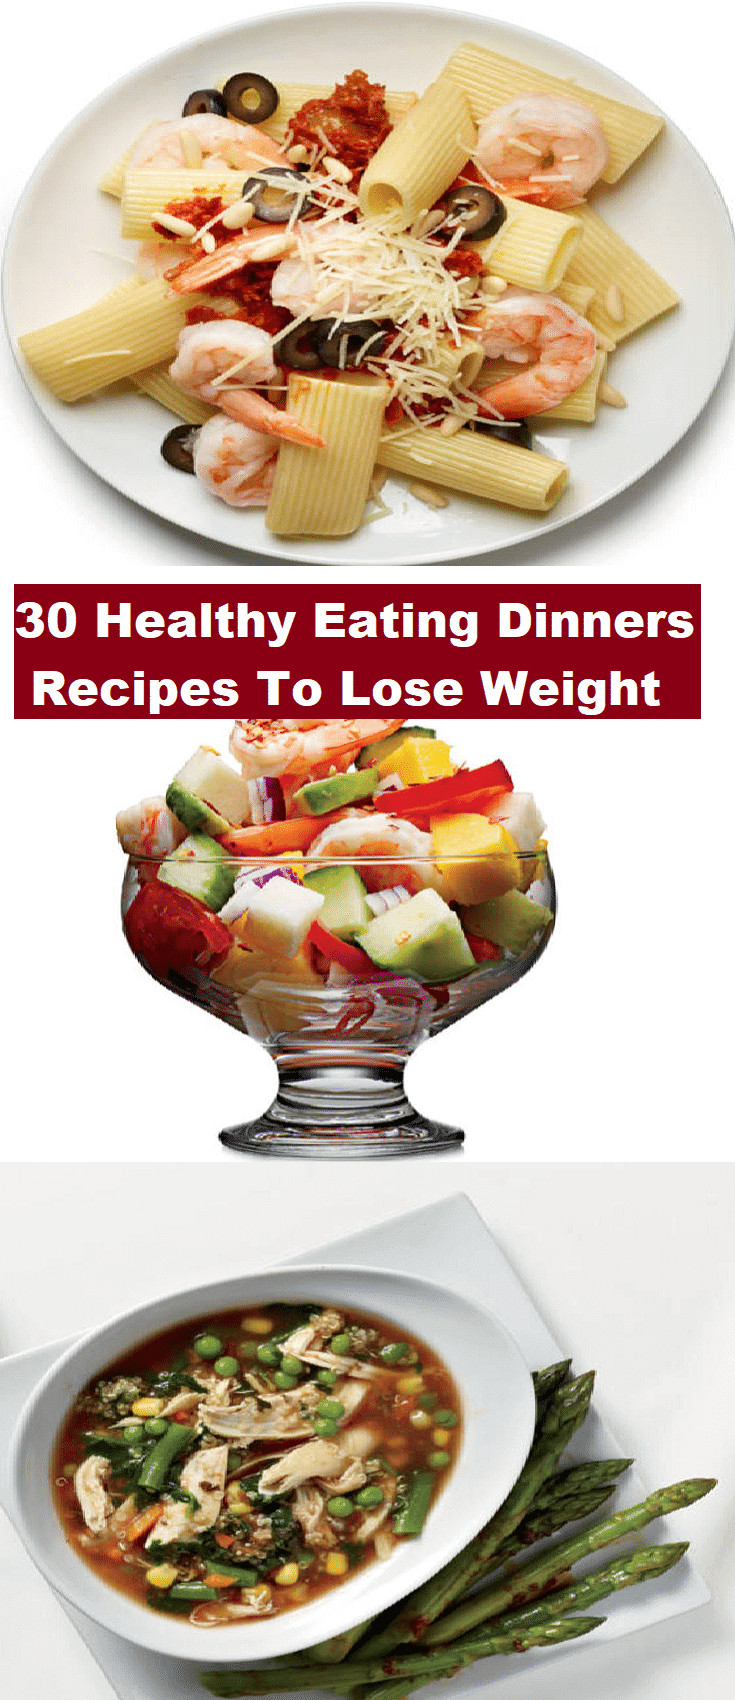 Healthy Dinner Recipes To Lose Weight  30 Healthy Eating Dinners Recipes To Lose Weight Healthy